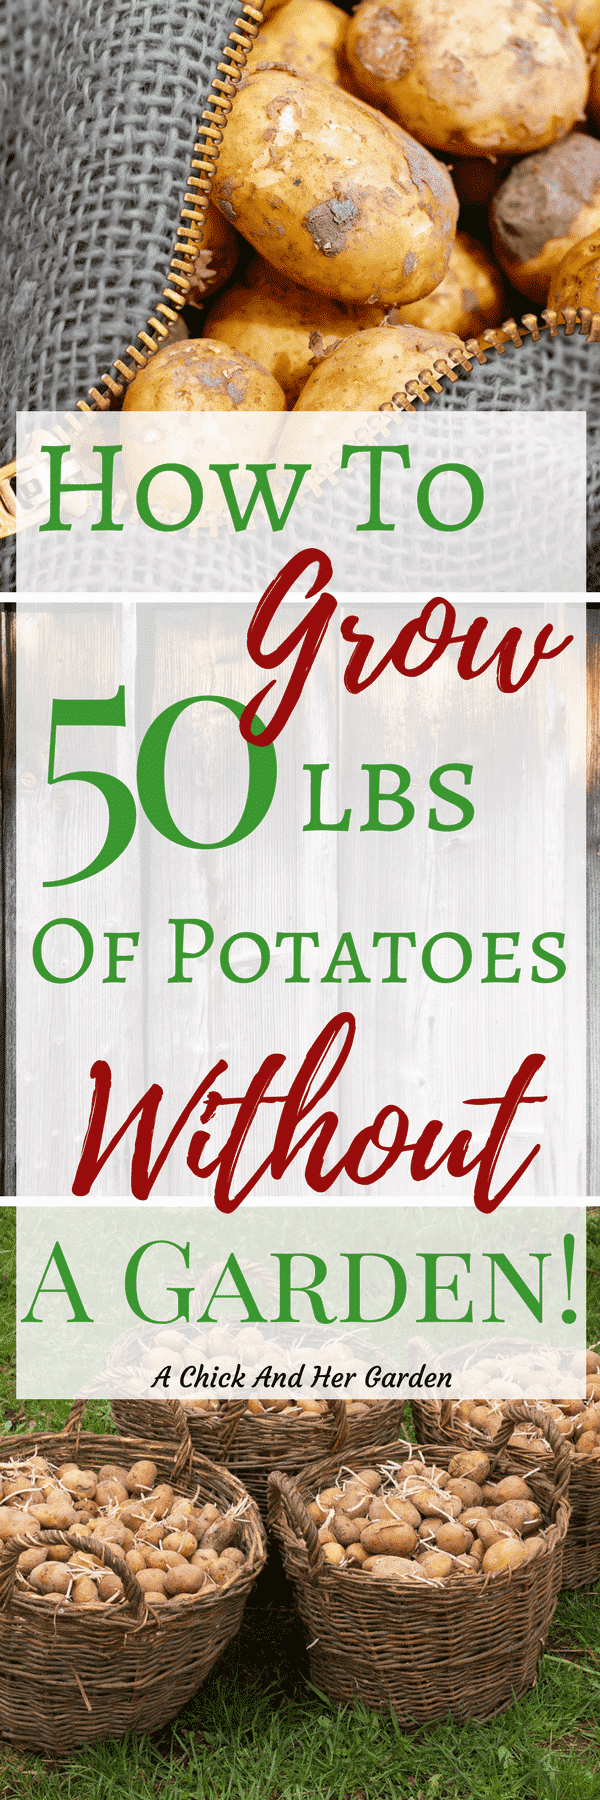 I almost gave up on growing potatoes, because they took up so much space in the garden. This trick helps me grow them without even planting them in the garden! #growingpotatoes #containergarden #gardening #growfood #achickandhergarden